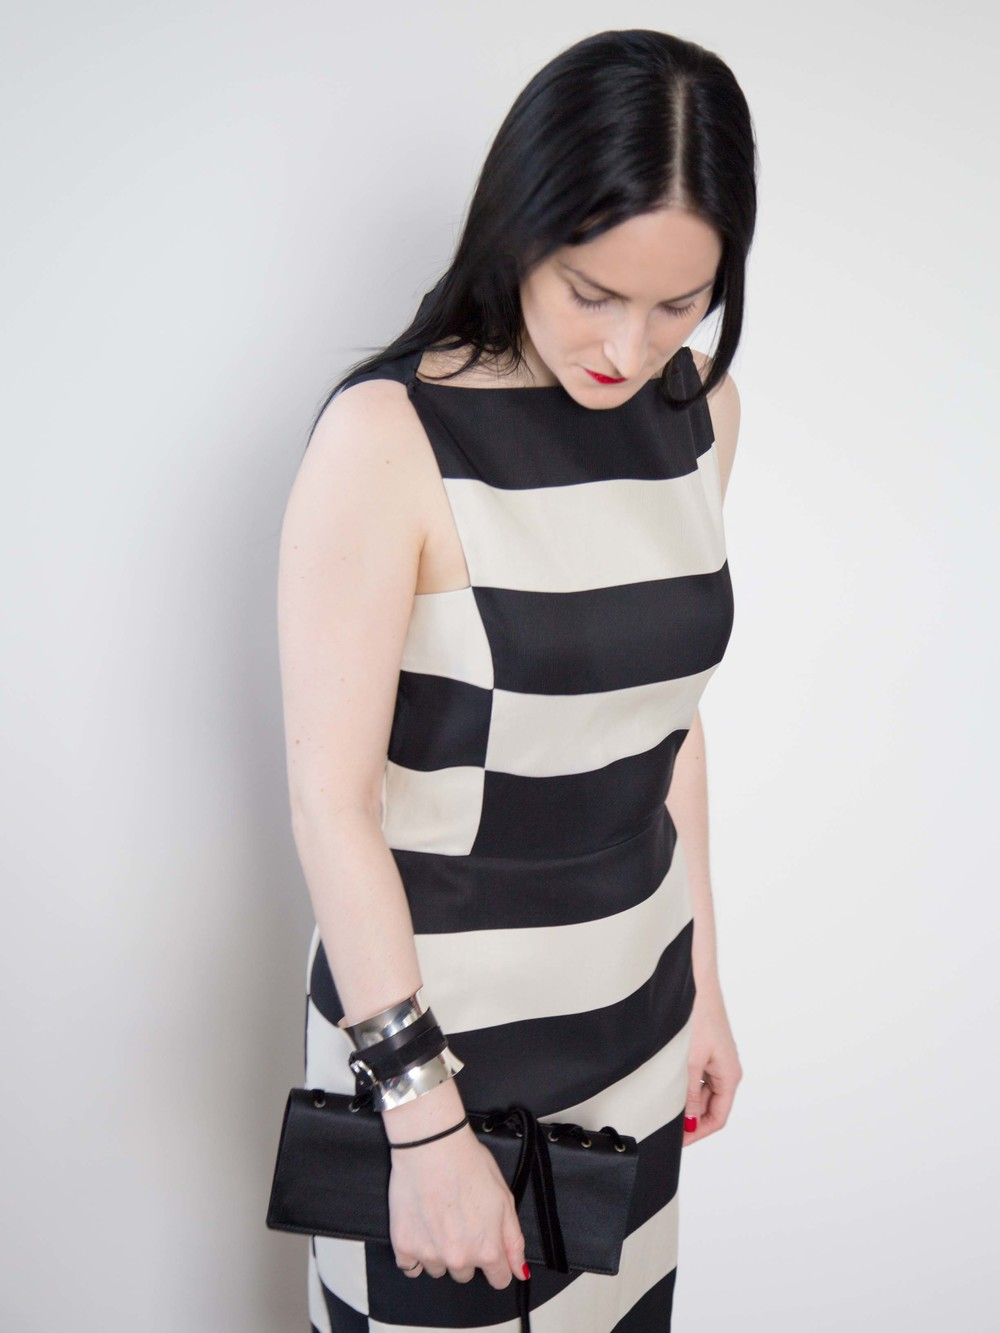 Lanvin Striped Dress, Georg Jensen Cuff, Yves Saint Laurent Vintage Clutch, Cartier Love Ring